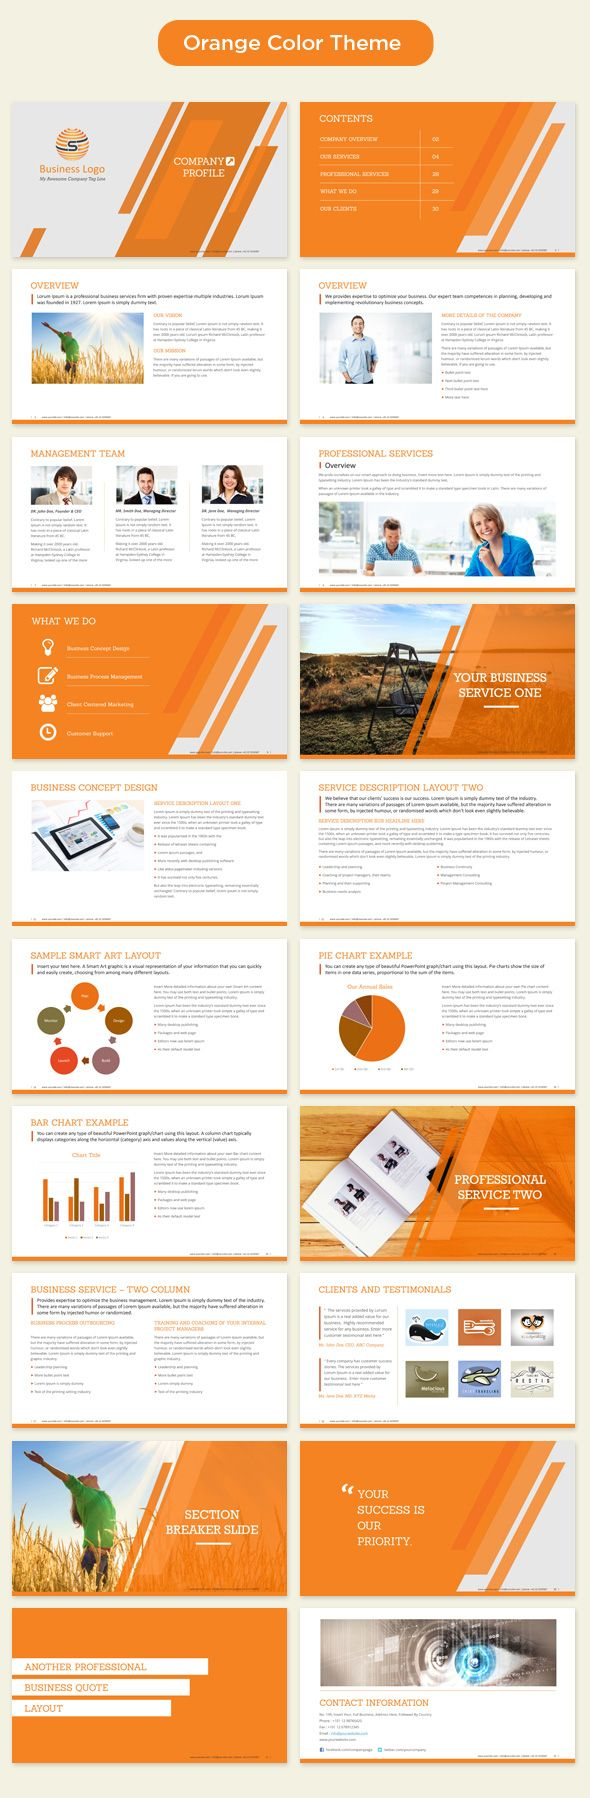 Example Of Company Profile Template Captivating Company Profile Template Powerpointtemplate Is Available In 4 Uni .